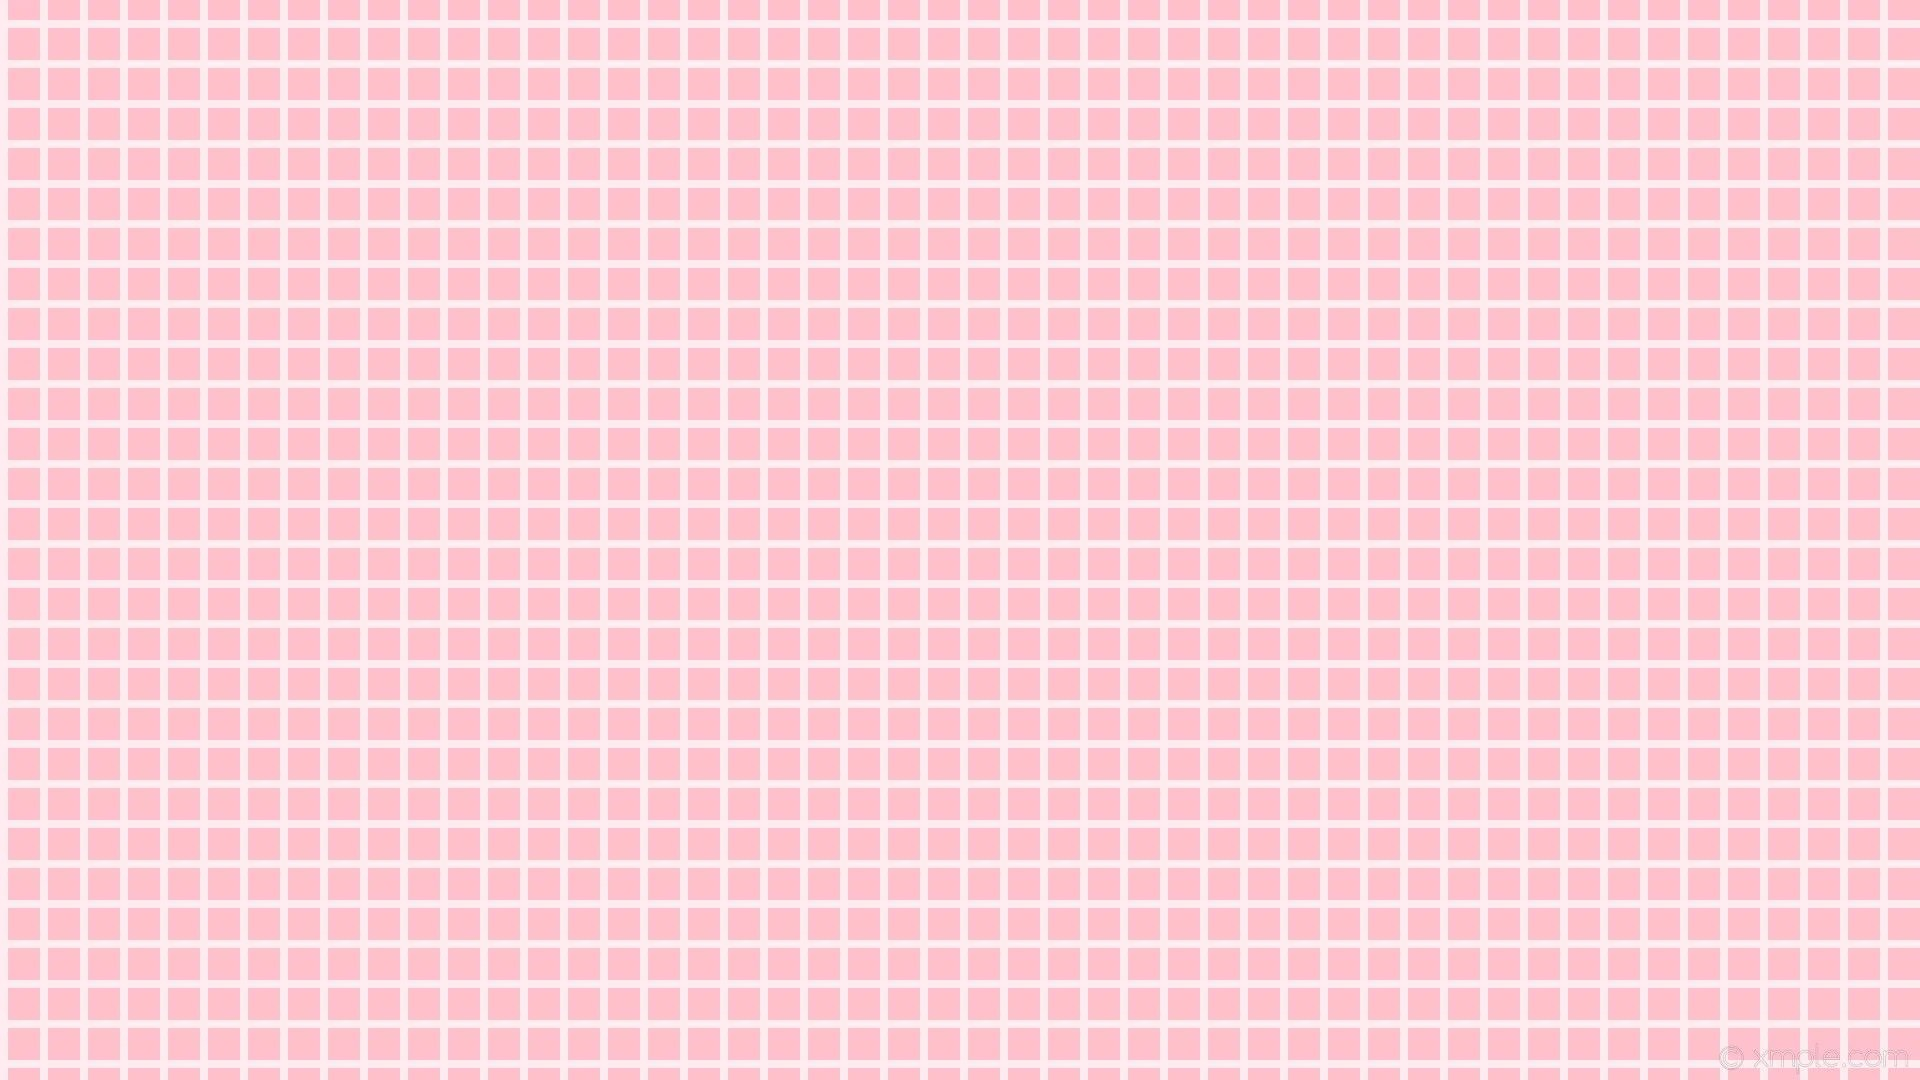 Pink wallpaper brings in a warm accent color to bring into a room with an existing palette or build a design theme around. Aesthetic Pink Desktop Wallpapers - Top Free Aesthetic ...